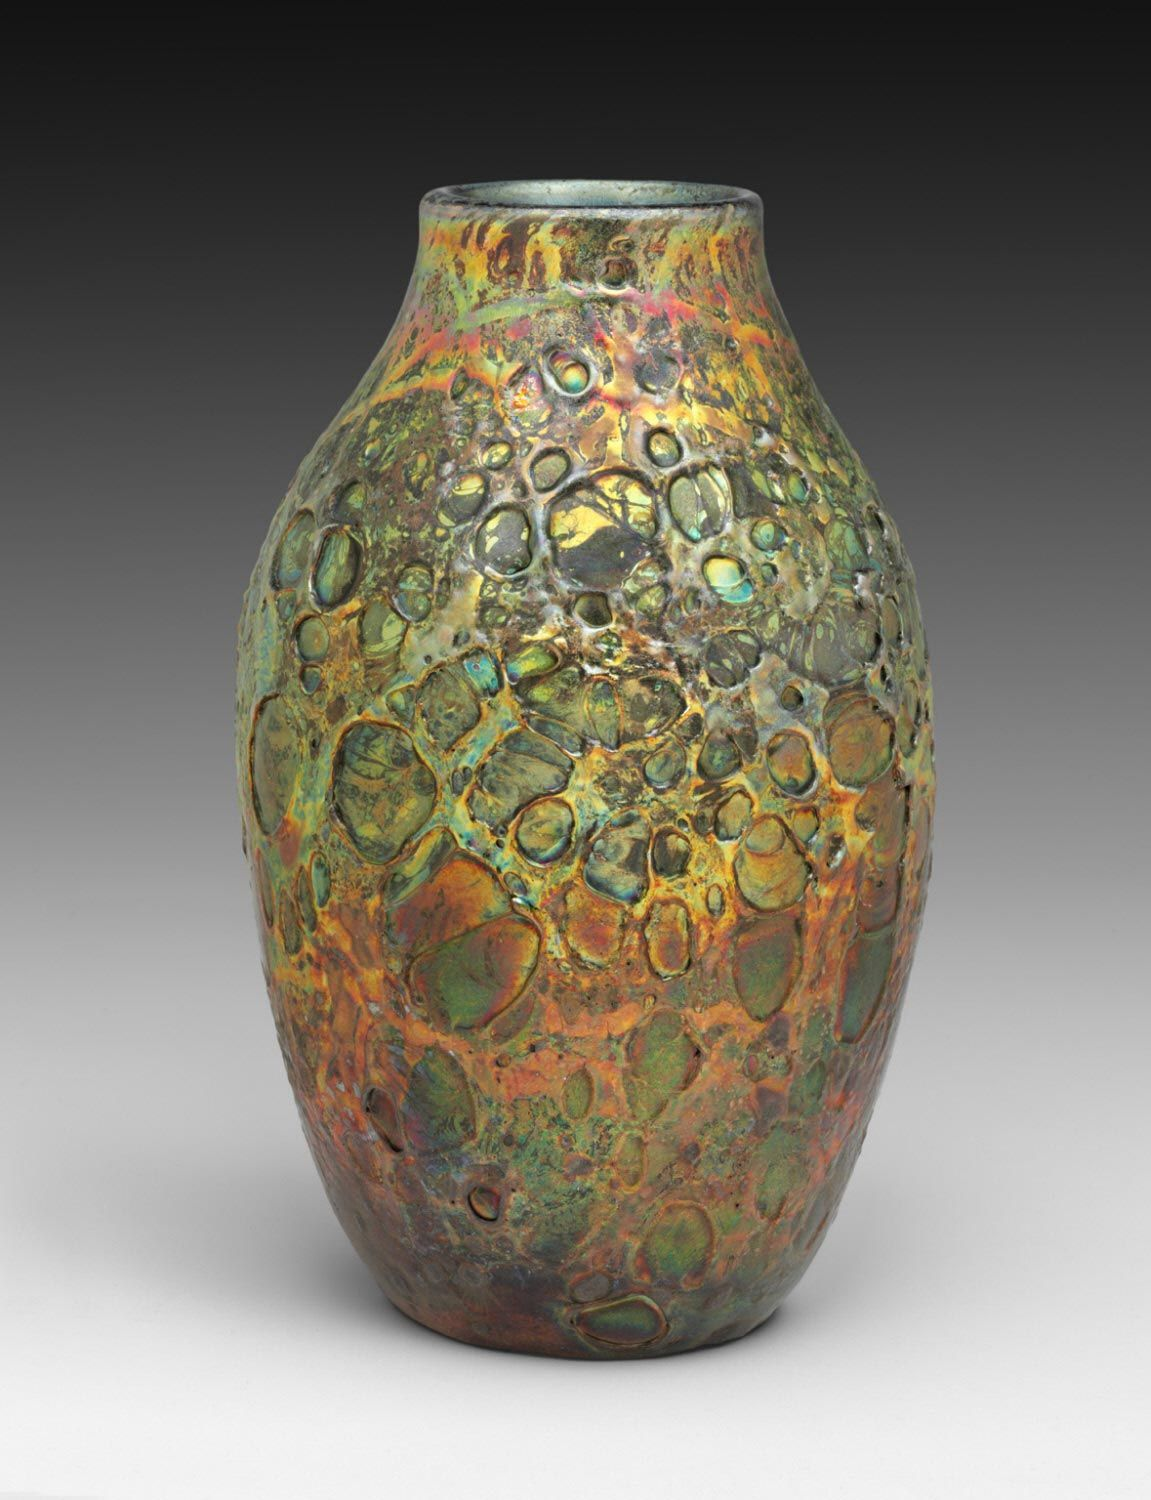 96aec741831 Cypriote Vase Louis Comfort Tiffany Made by the Tiffany Glass and Decorating  Company c. 1900